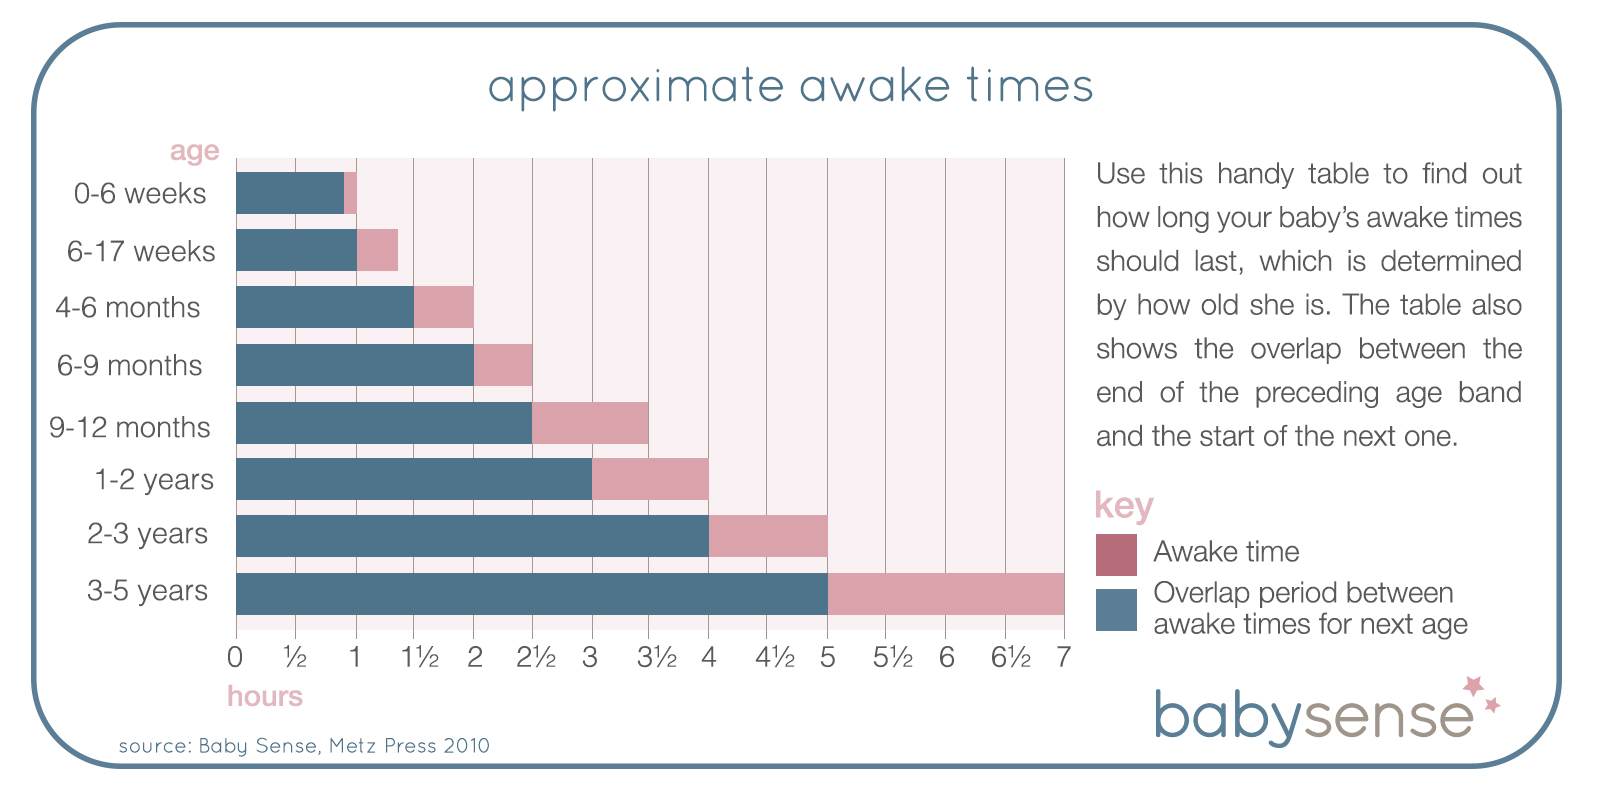 approximate-awake-times